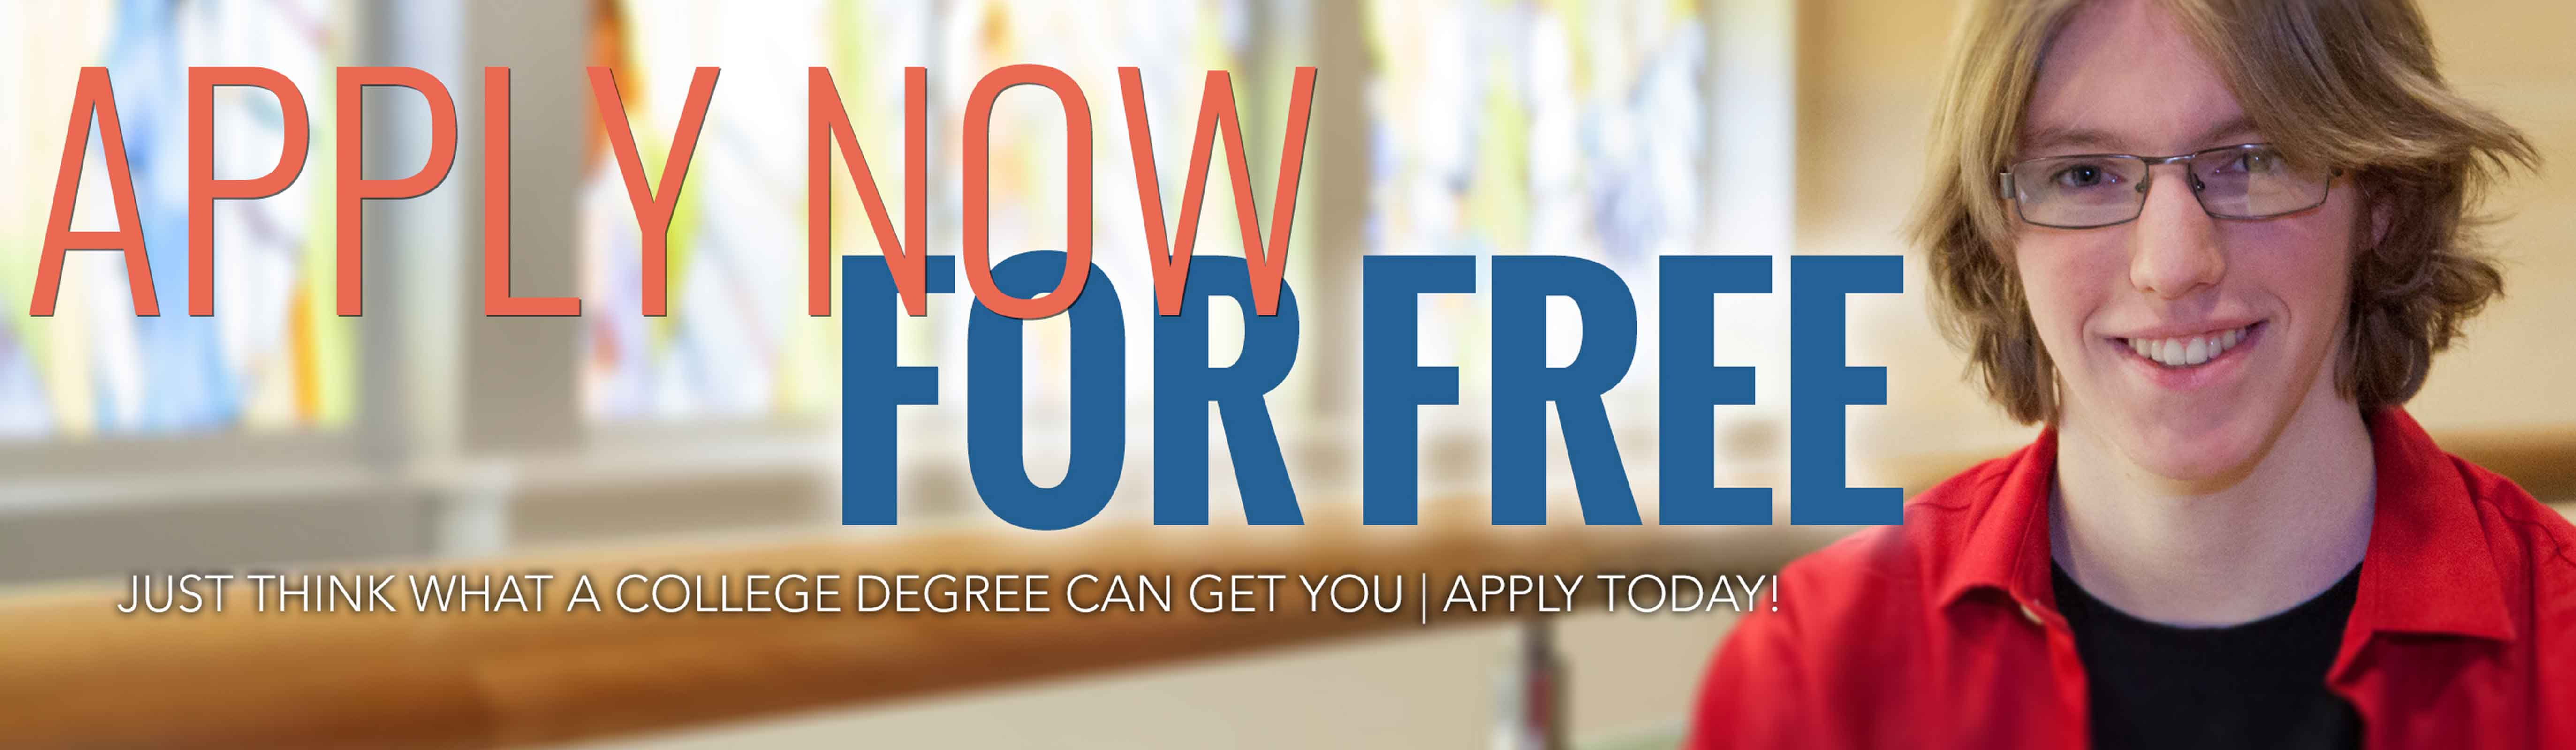 Apply Now for Free